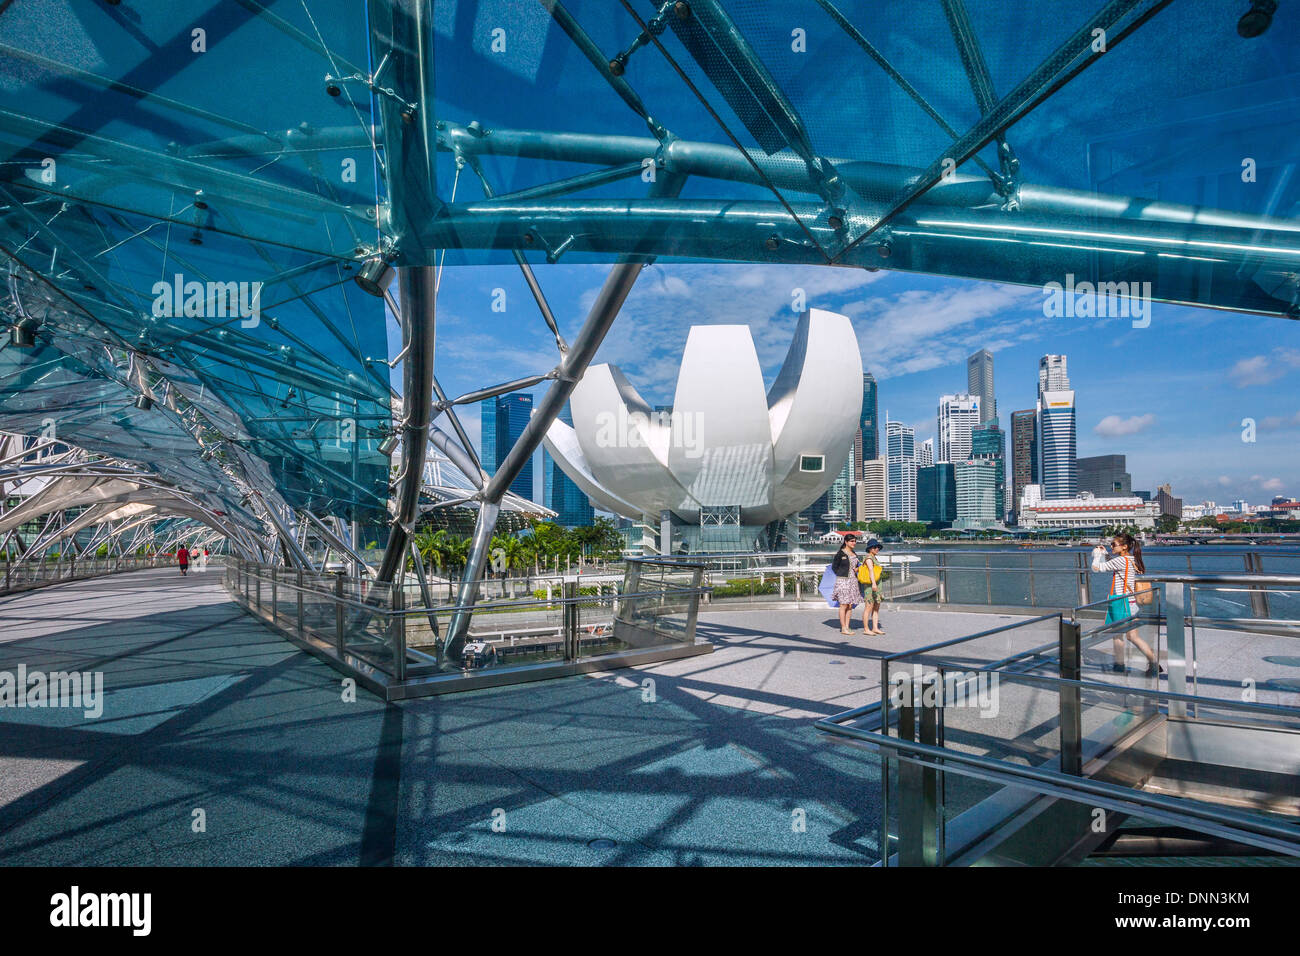 Singapore, view of the Art Science Museum, Singapore skyline and Marina Bay from Helix Bridge - Stock Image